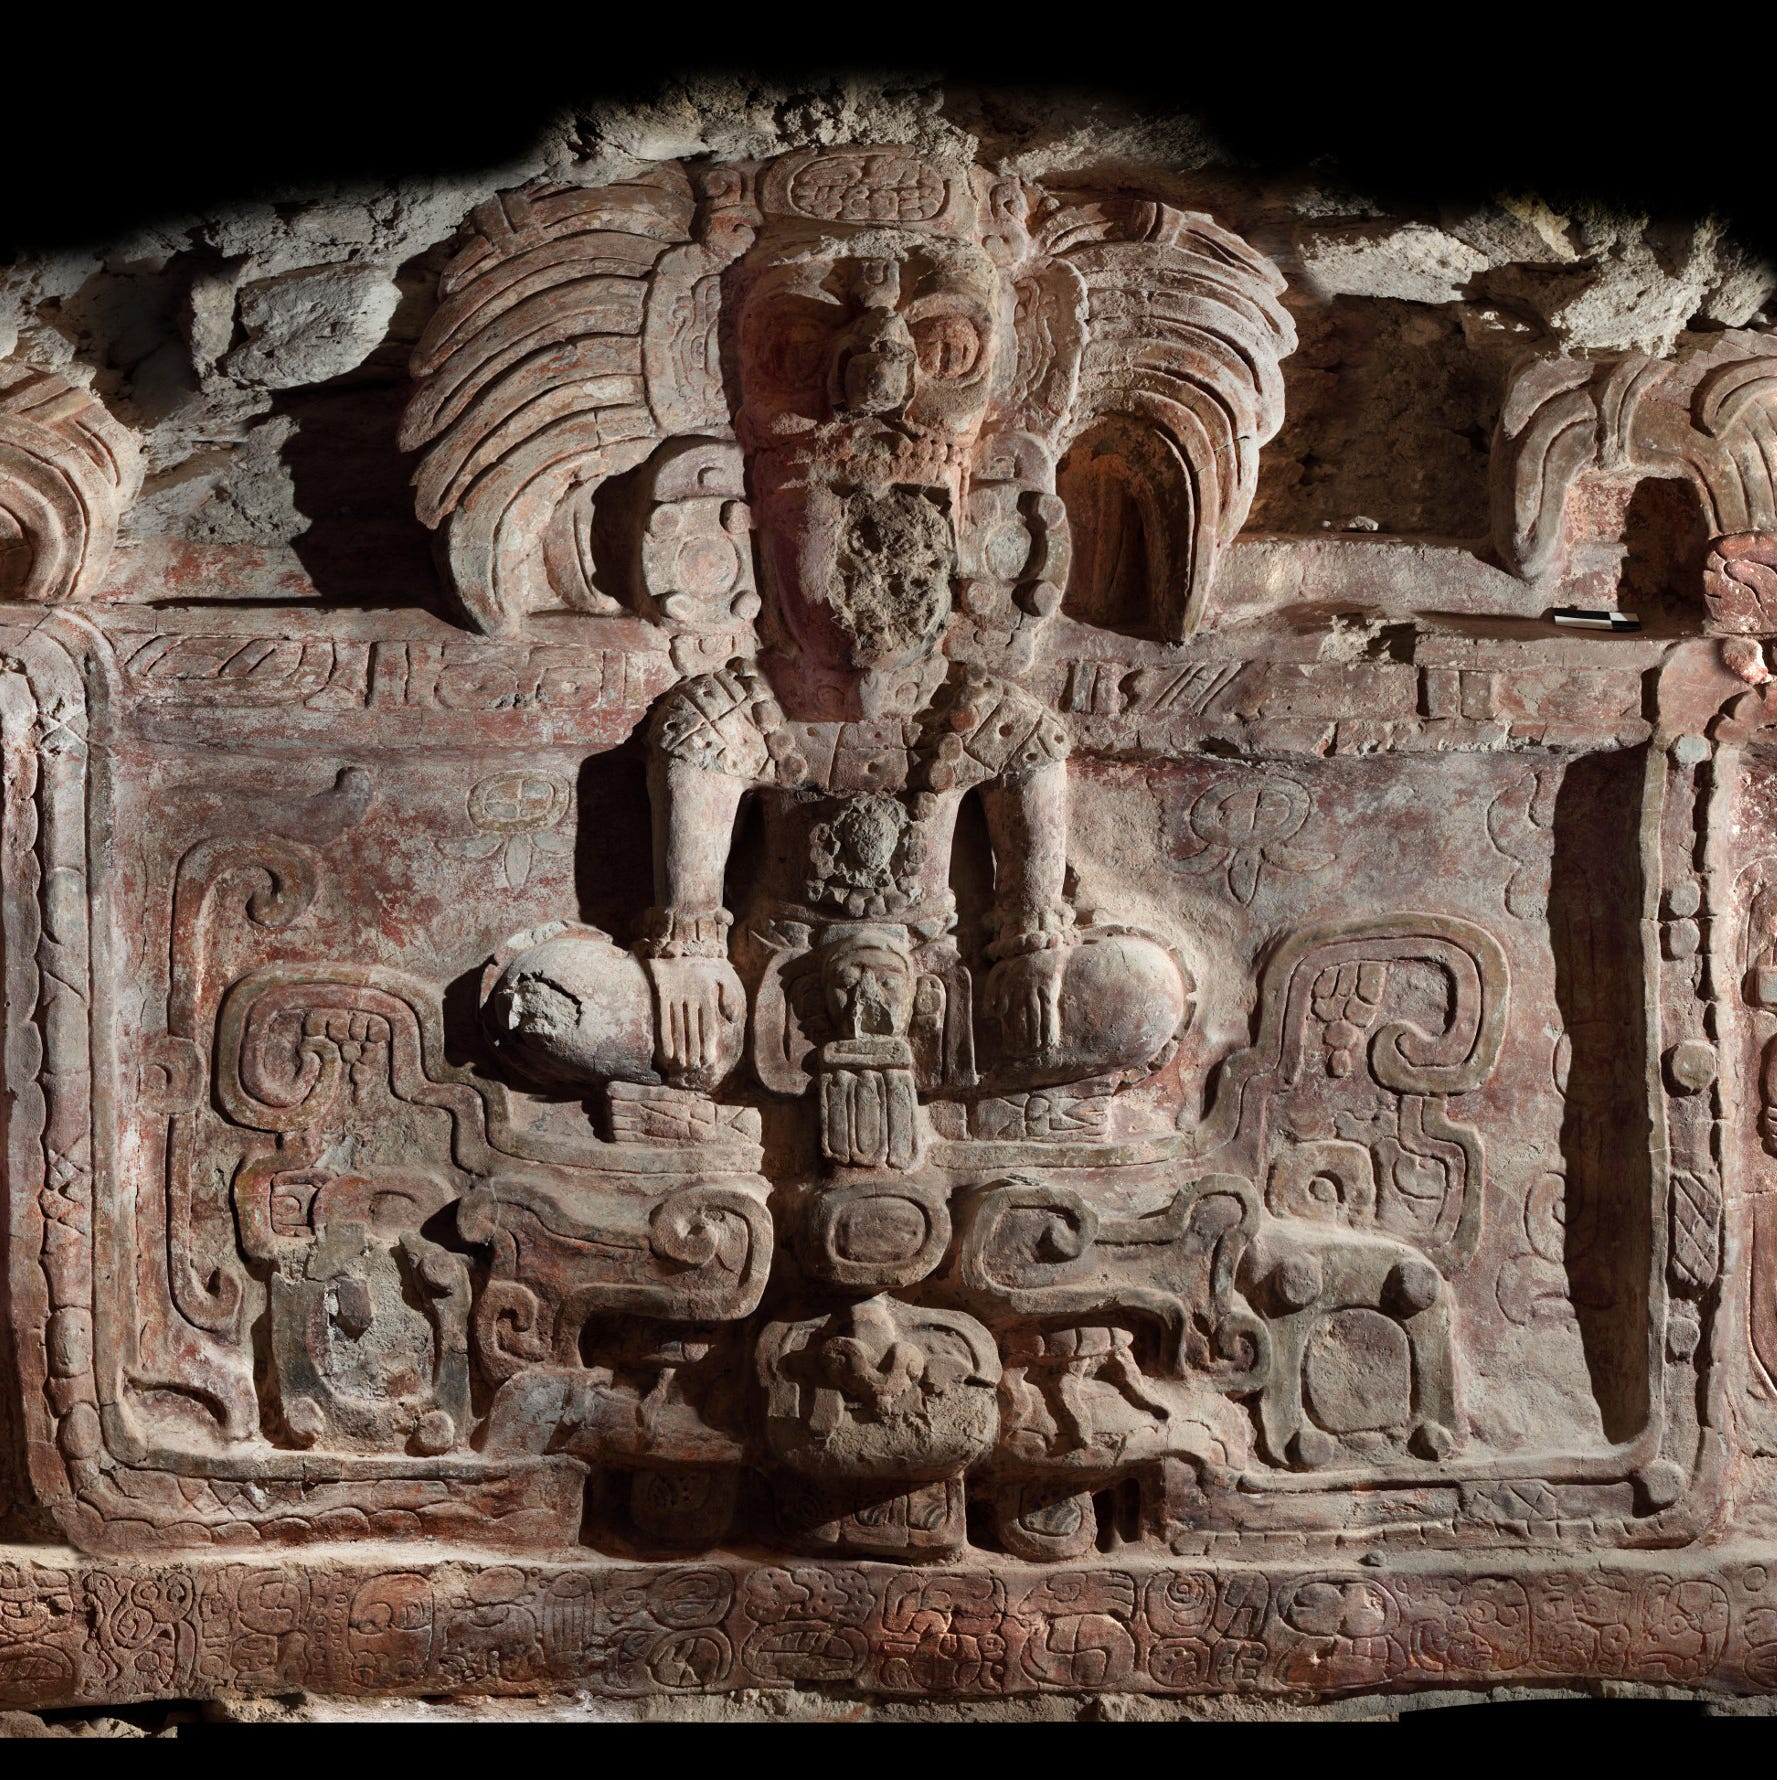 Stunning Maya sculpture unearthed from buried pyramid